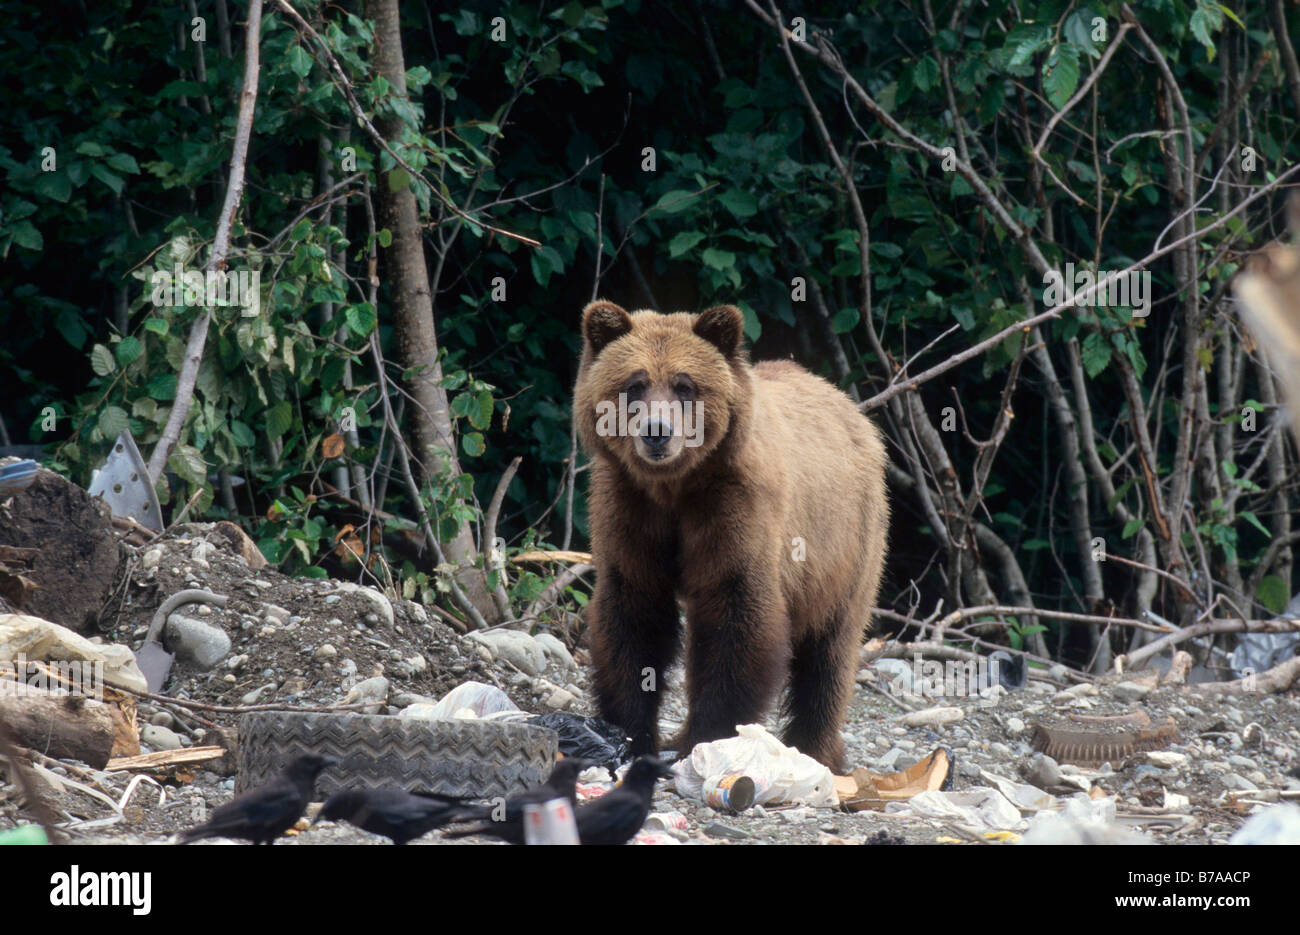 Grizzly Bear (Ursus arctos horribilis) in a landfill in Alaska, North America - Stock Image